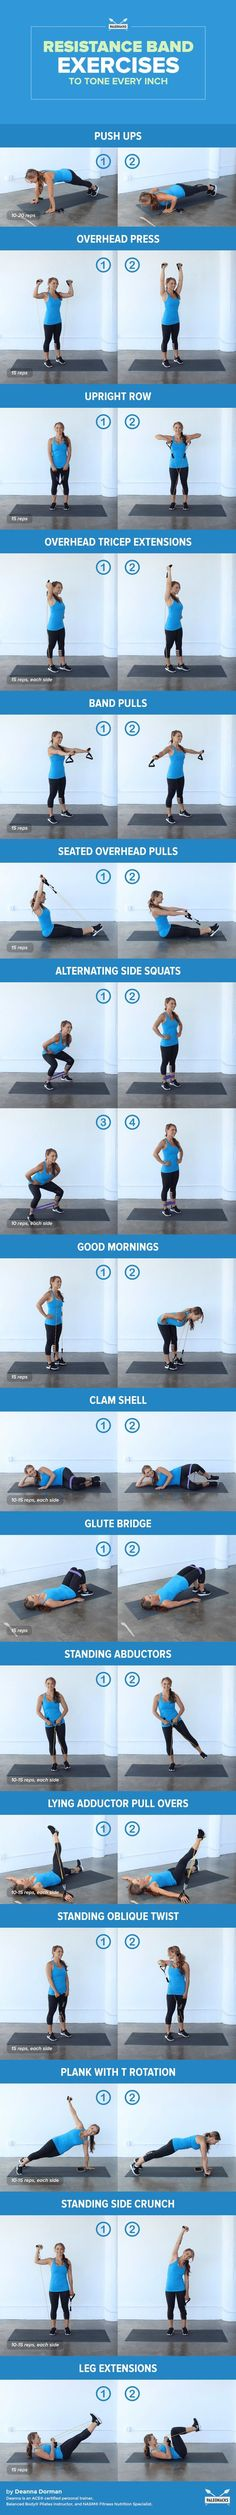 44-Resistance-Band-Exercises-to-Tone-Every-Inch-infog.jpg